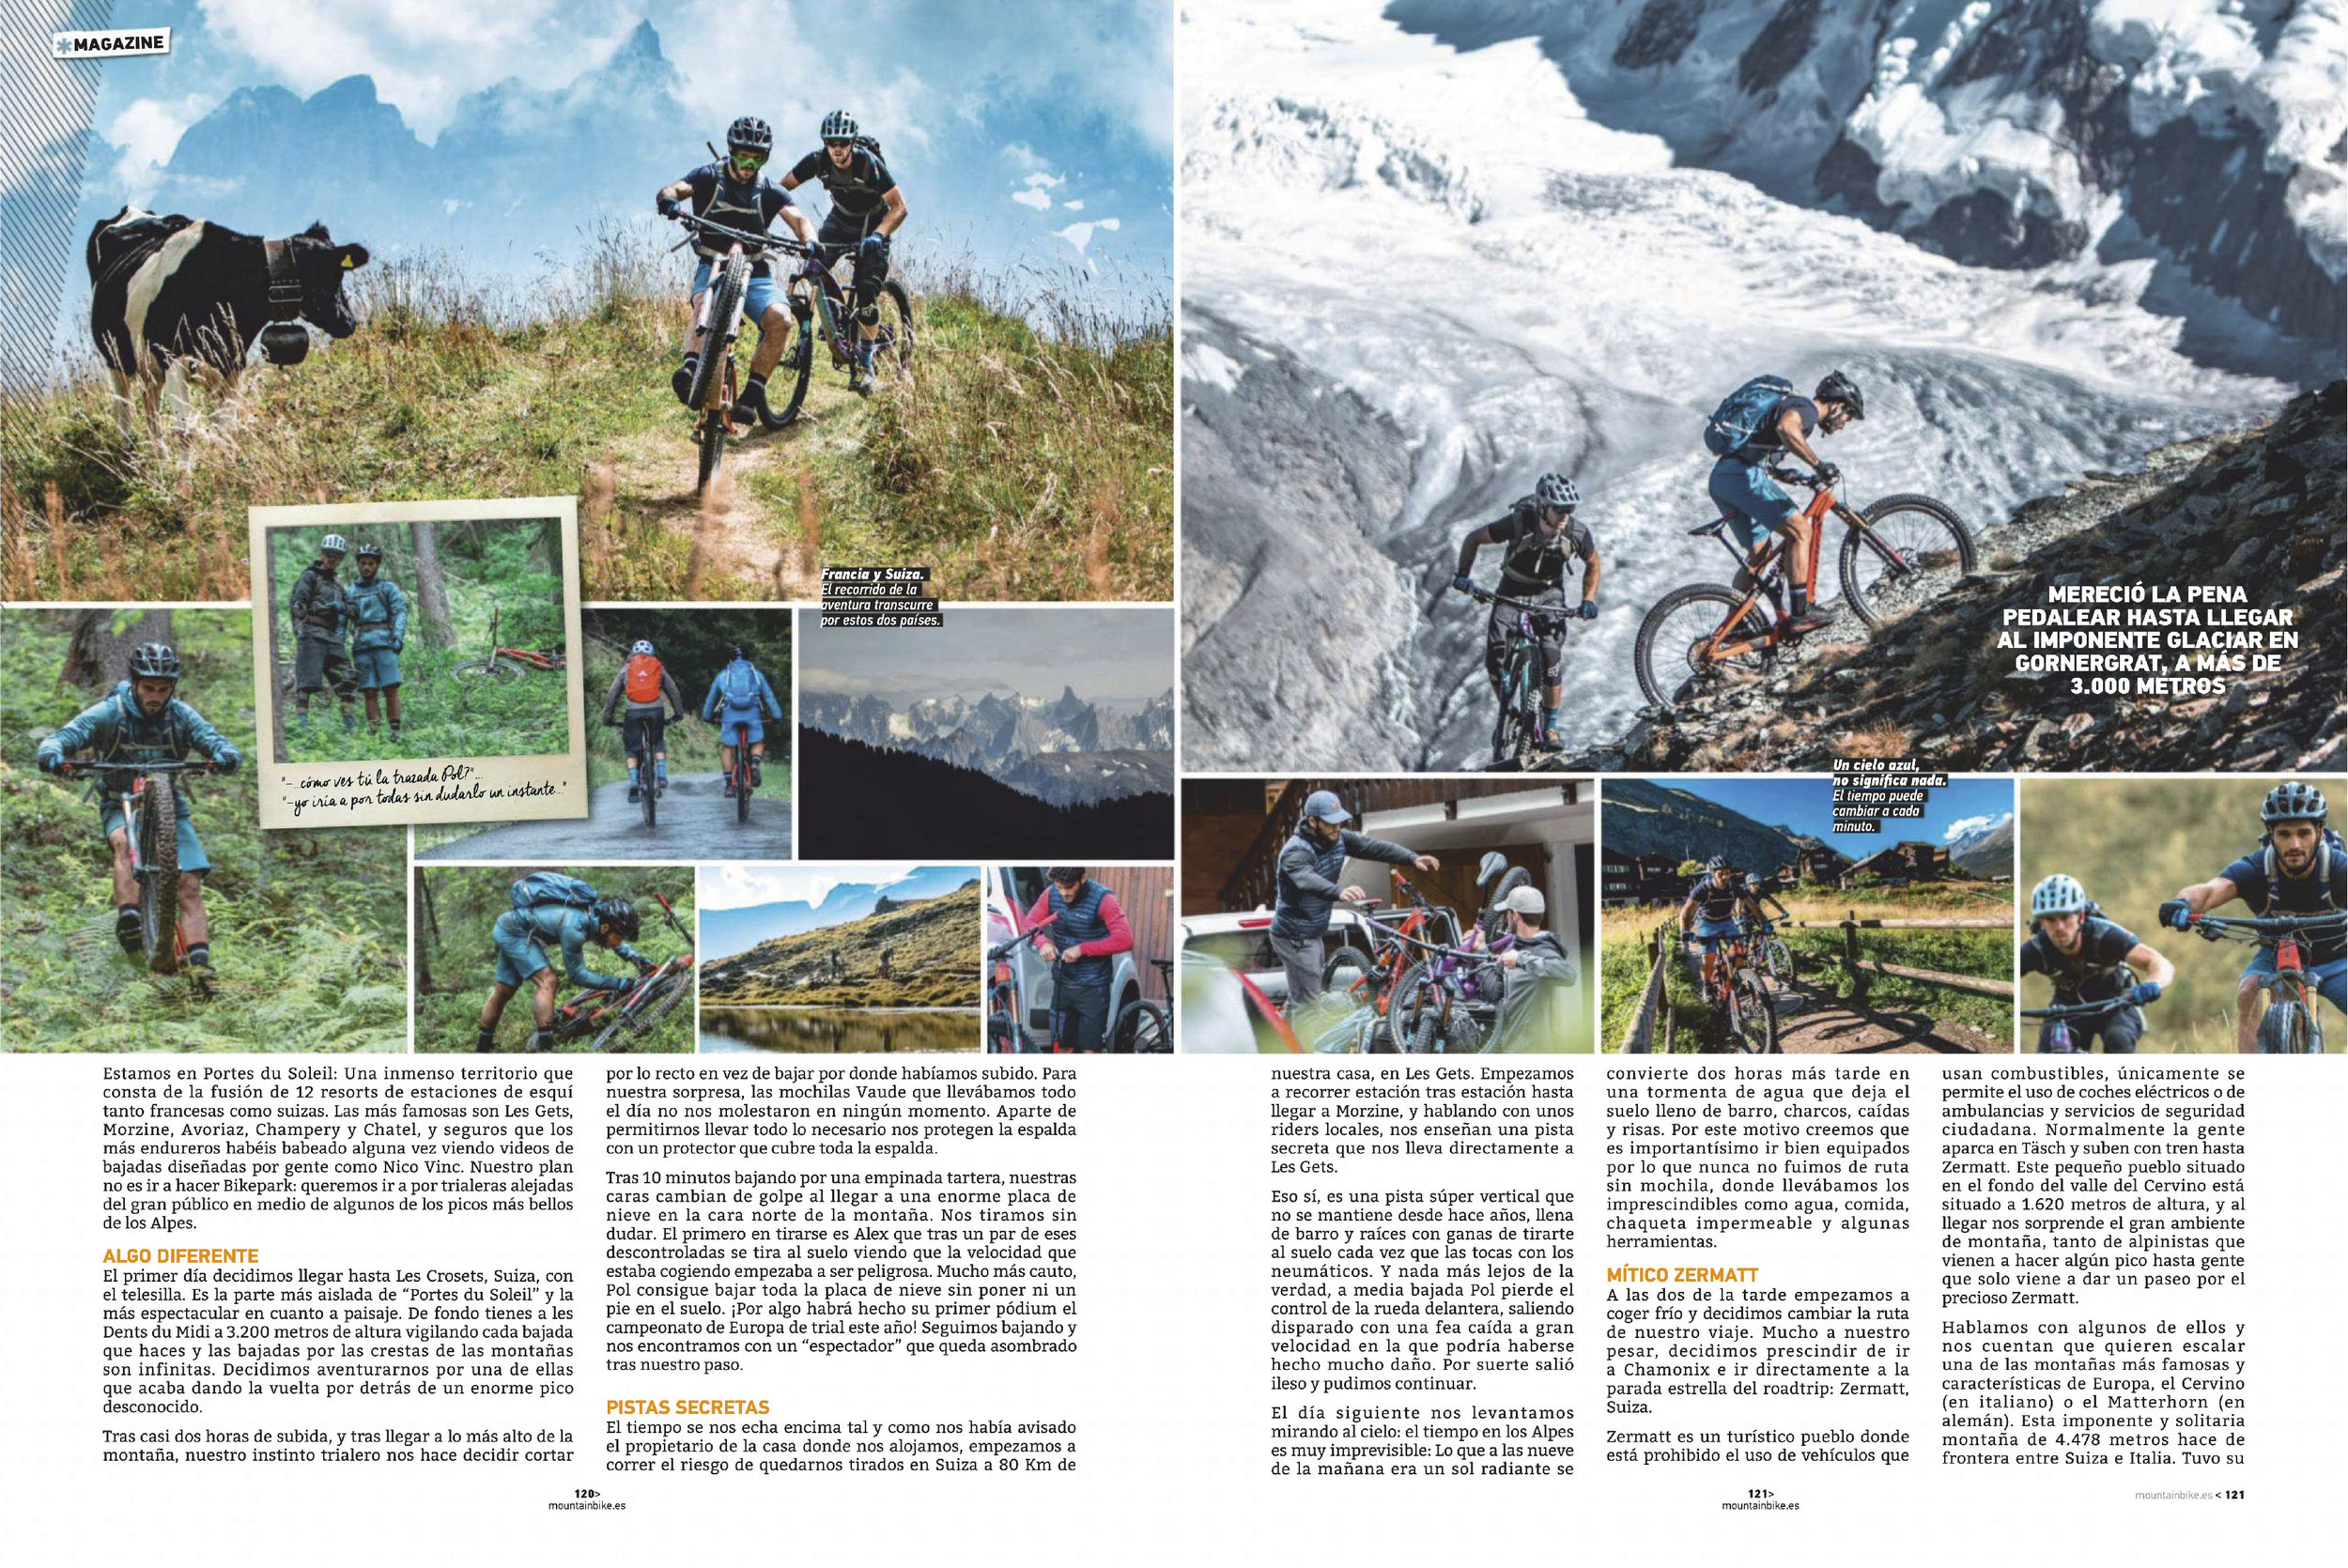 pol_tarres_projects_alps_2018_revista_bike_3.jpg